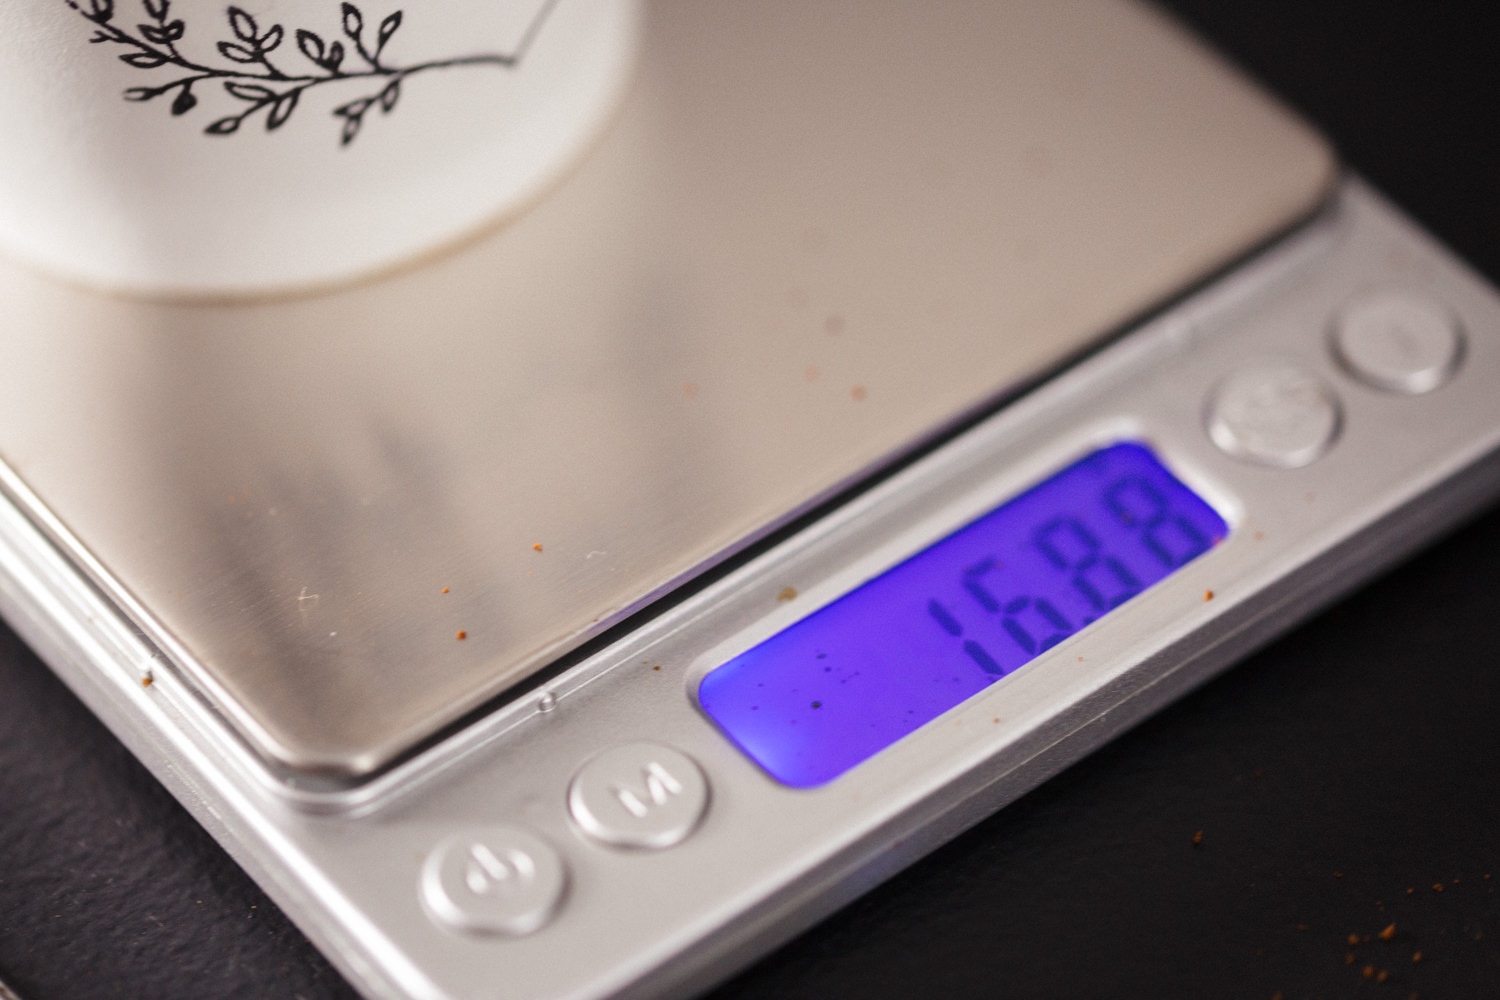 We weigh our doses to ensure every single espresso starts its life in the same way. We eliminate variables to ensure consistancy across the board.